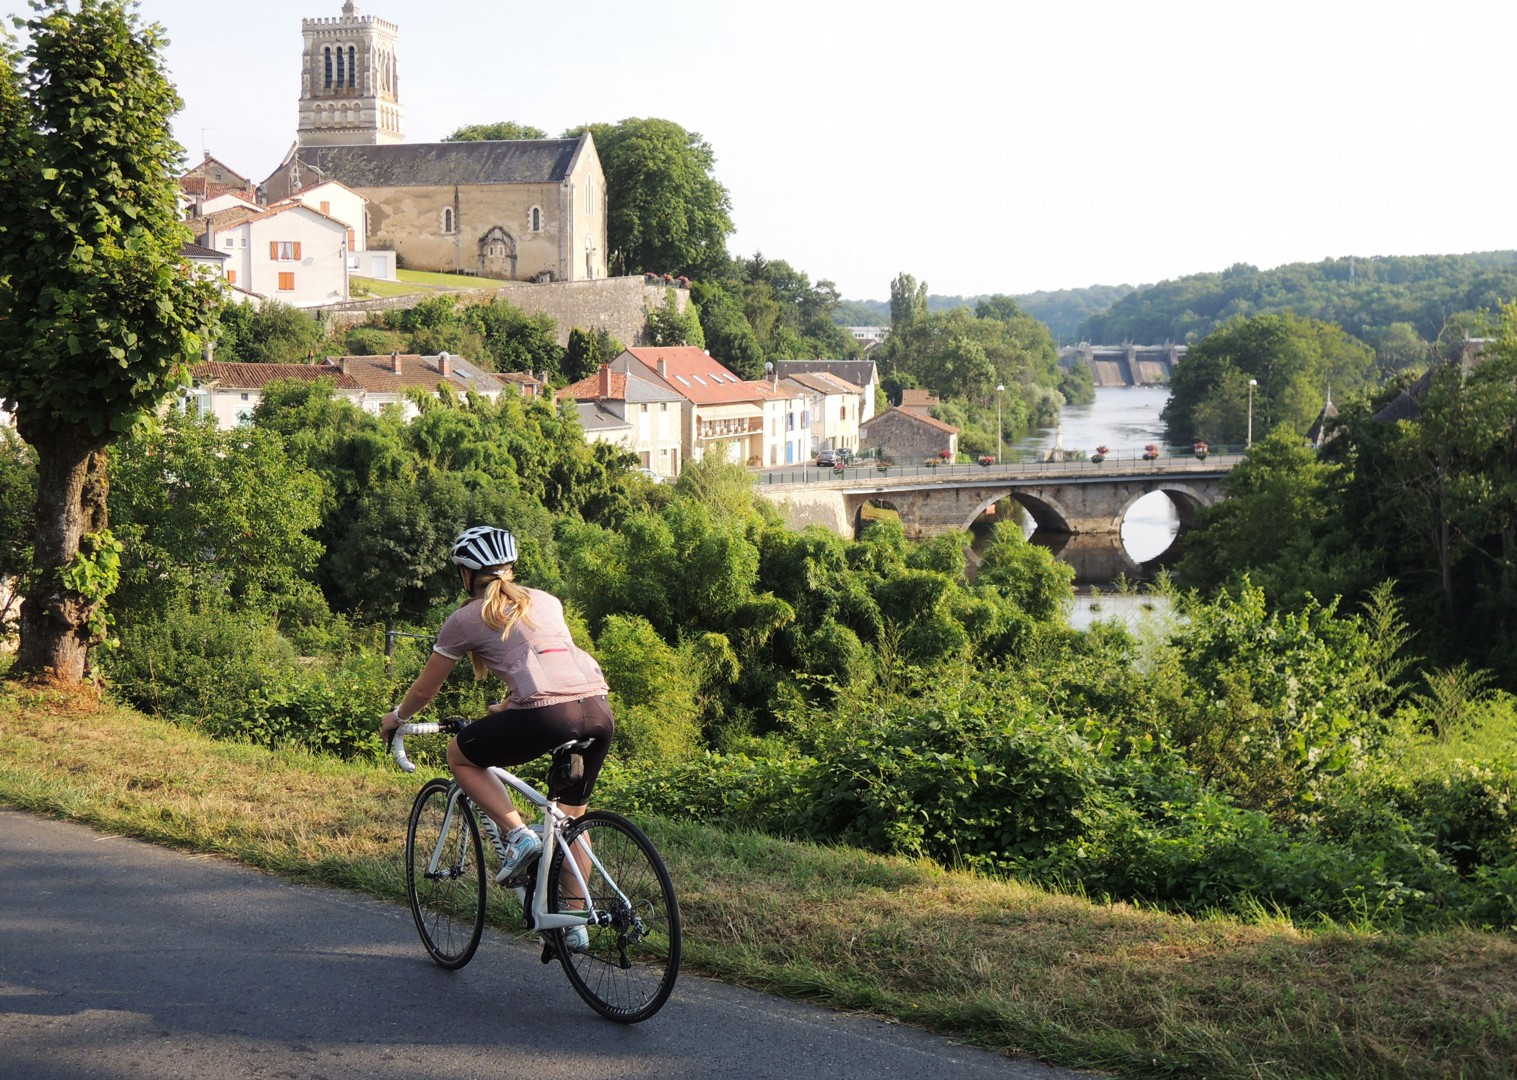 france-st-malo-to-nice.jpg - France - St Malo to Nice Explorer (20 days) - Guided Road Cycling Holiday - Road Cycling